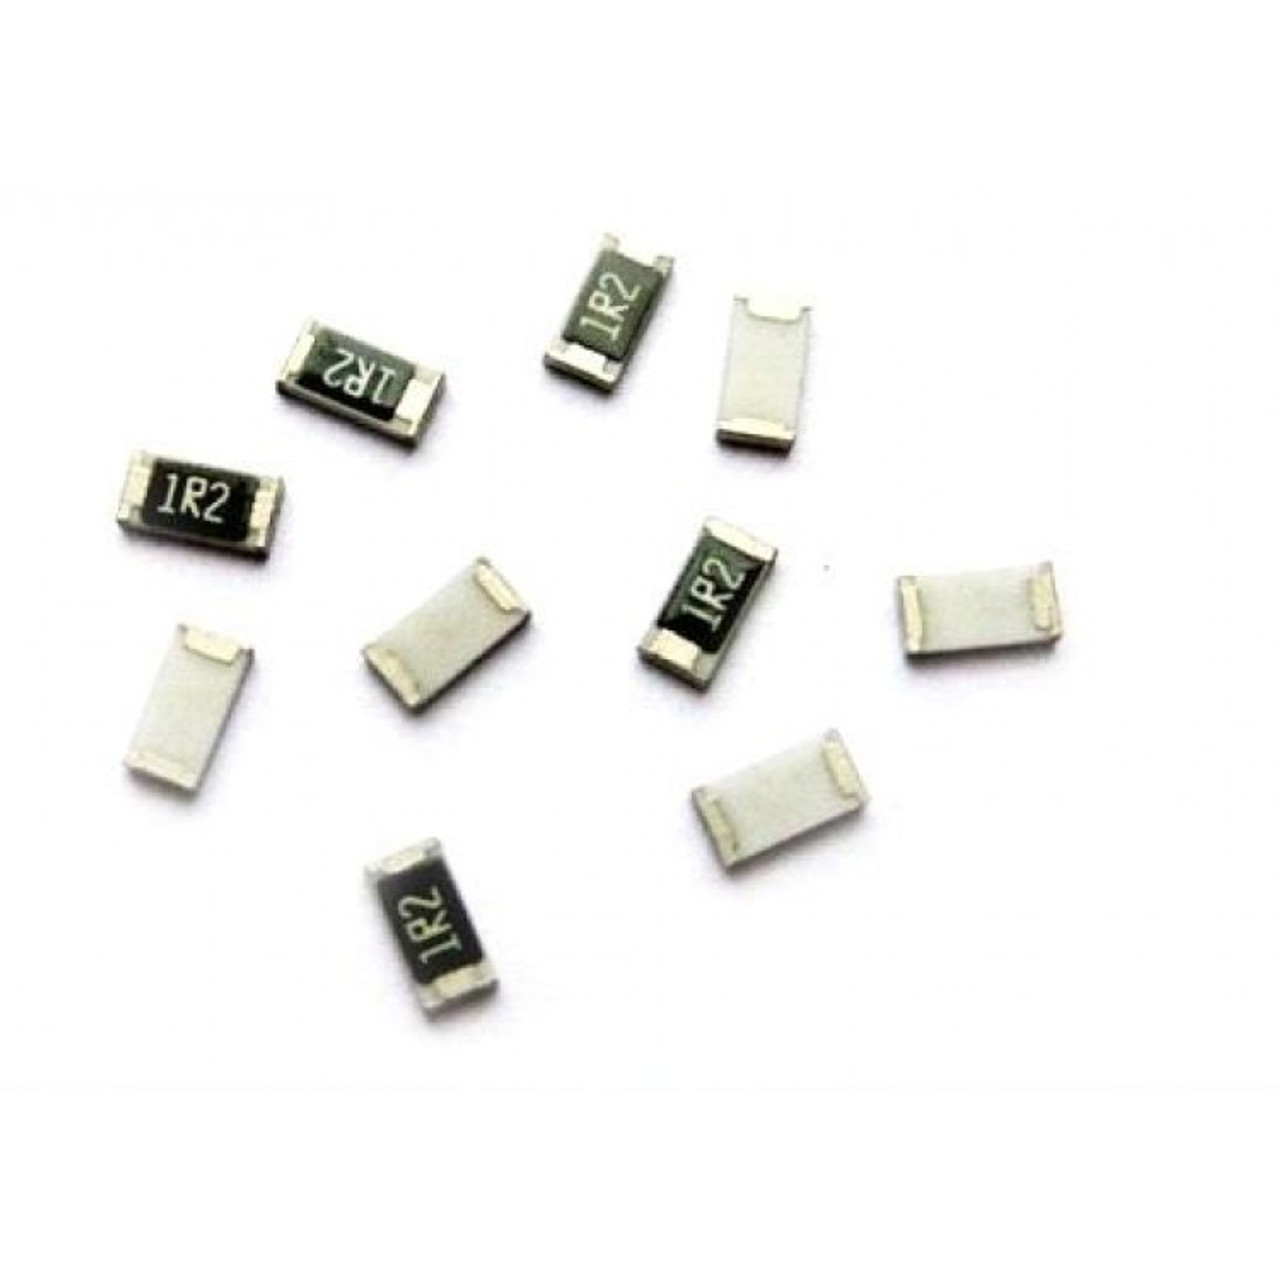 Pack of 100 CPF-A-0603B30RE RES SMD 30 OHM 0.1/% 1//16W 0603